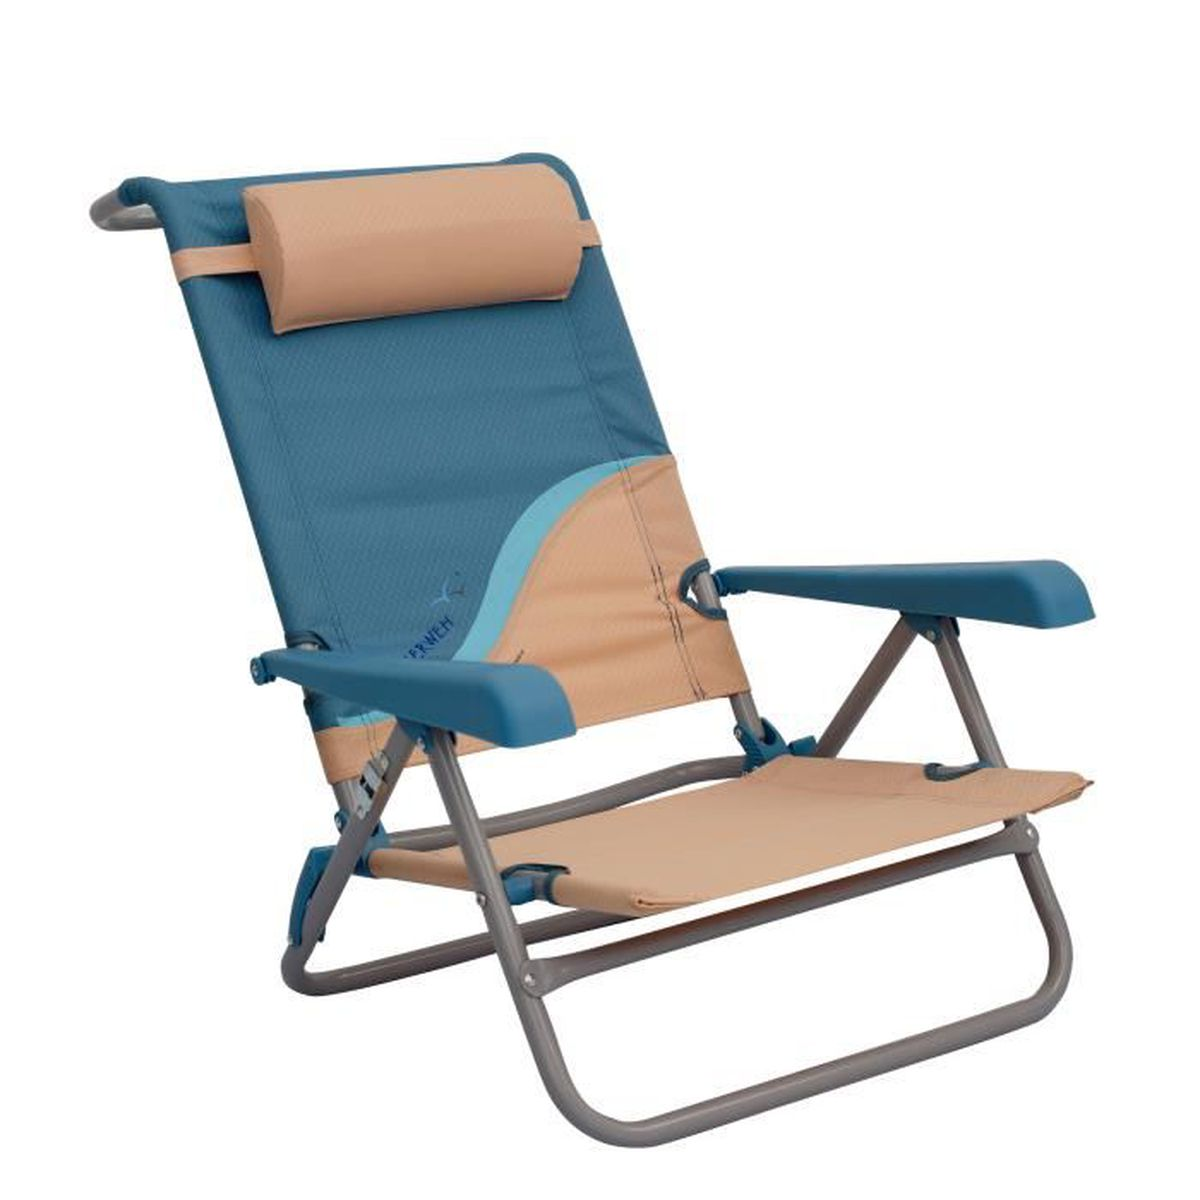 Chaise pliable de plage id es d 39 images la maison for Chaise longue de plage pliable